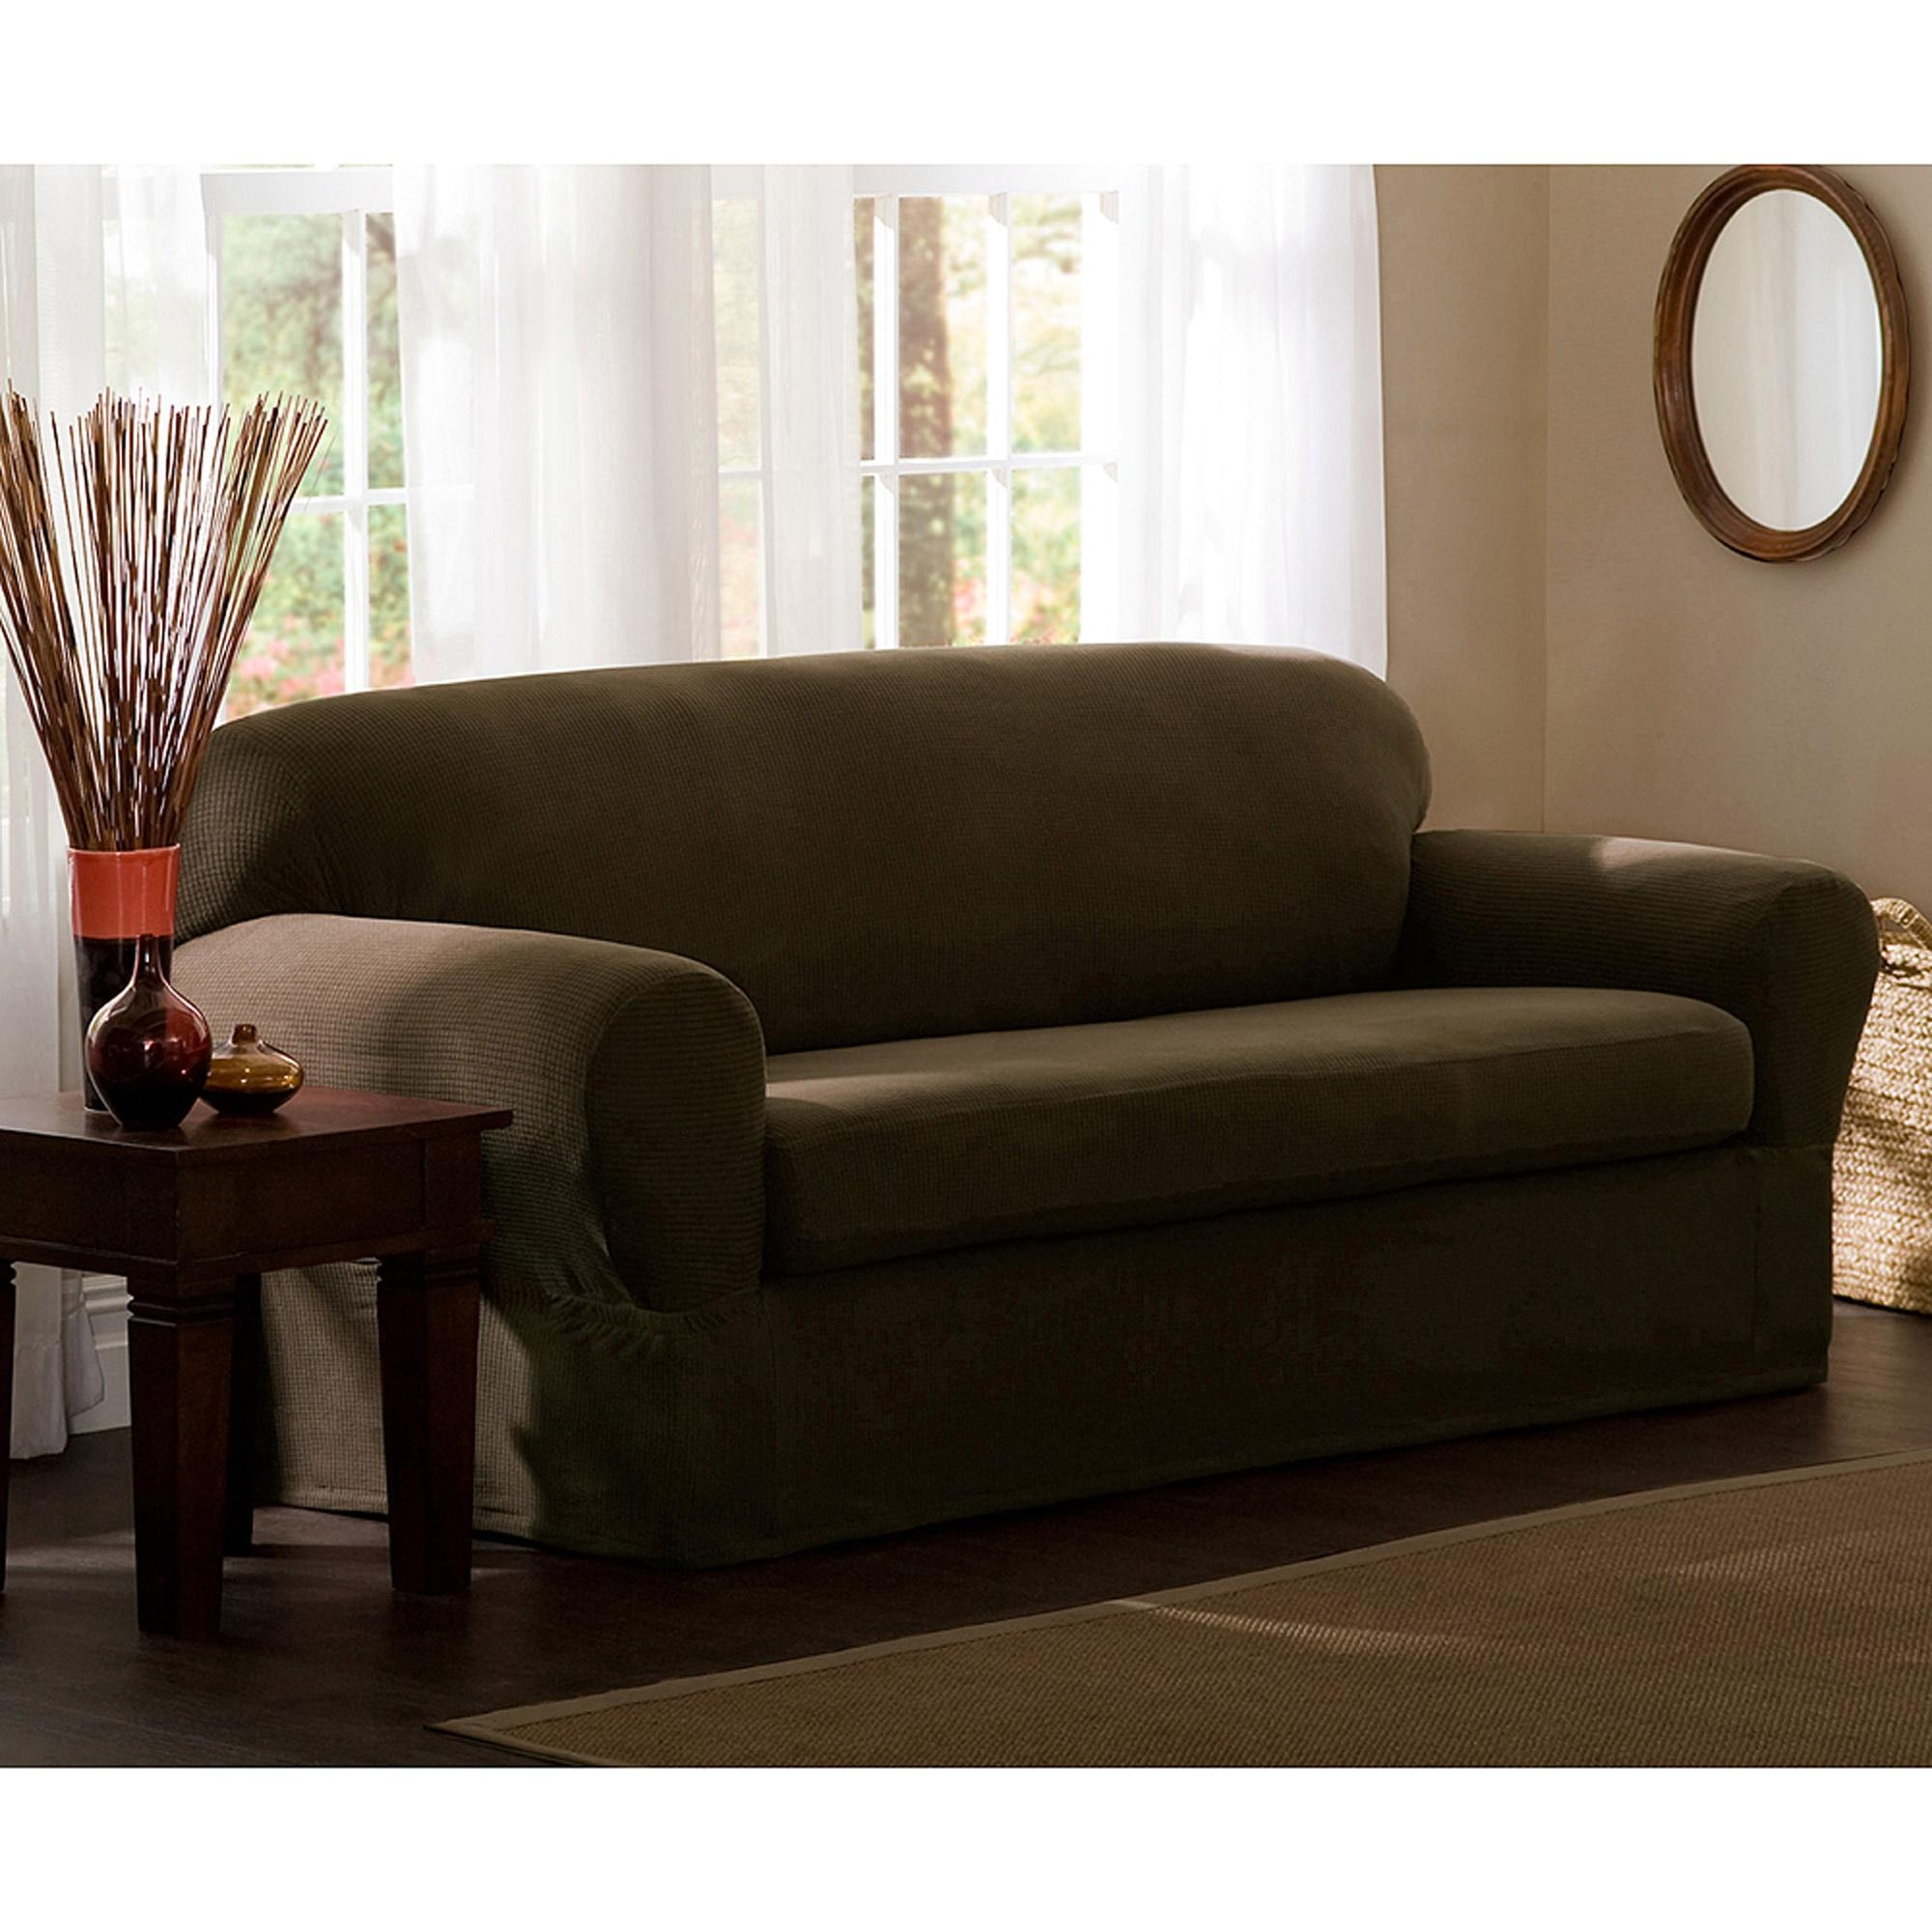 Mainstays Faux Suede Loveseat Slipcover – Walmart For Sofa And Loveseat Covers (Image 13 of 20)